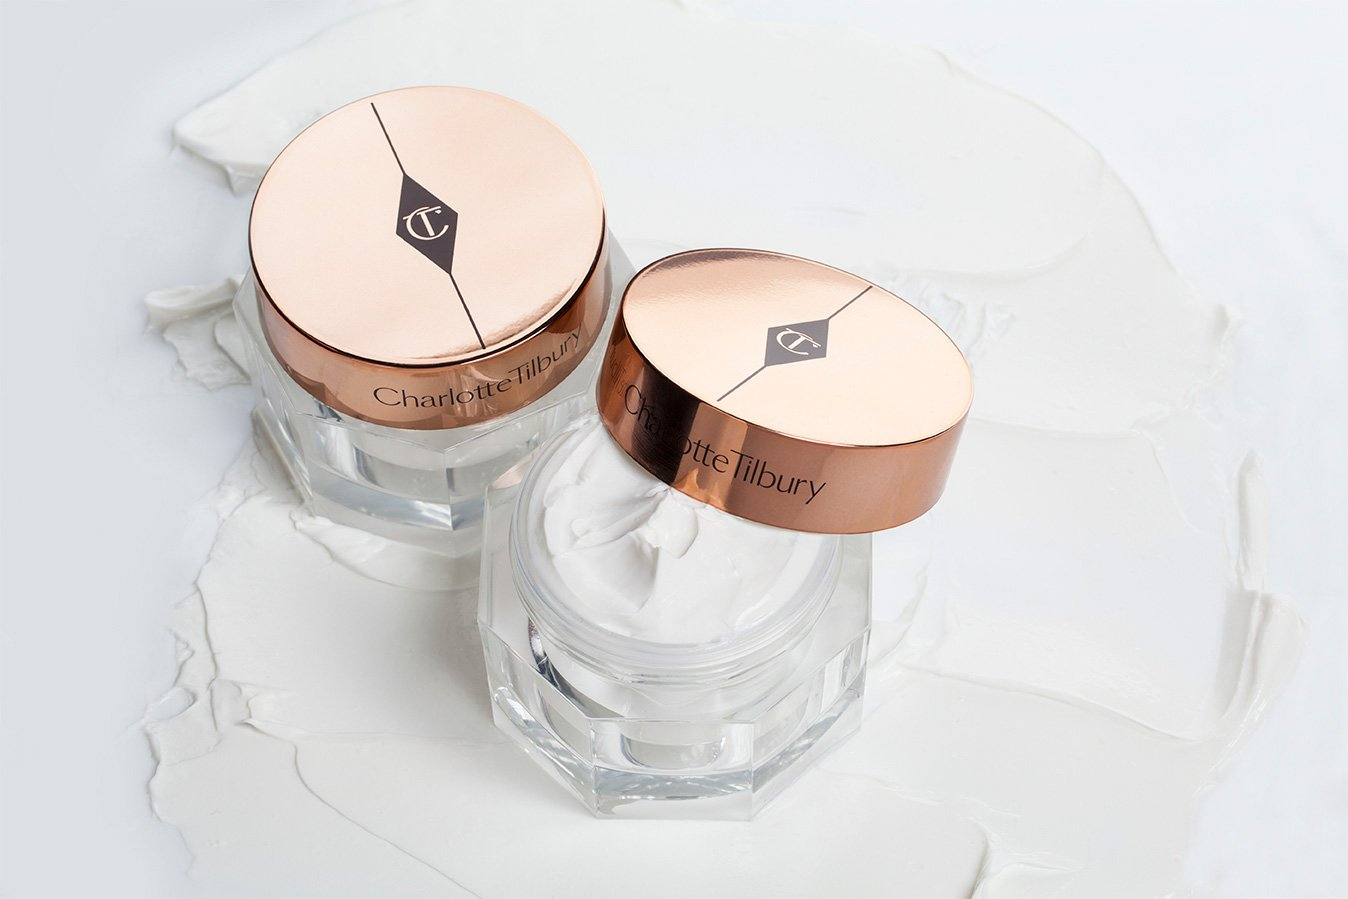 LIFT & ILLUMINATE your complexion with the award-winning #MagicCream #SkinCare https://t.co/p94LL4v7mv https://t.co/O6Gl3Hnk9Y